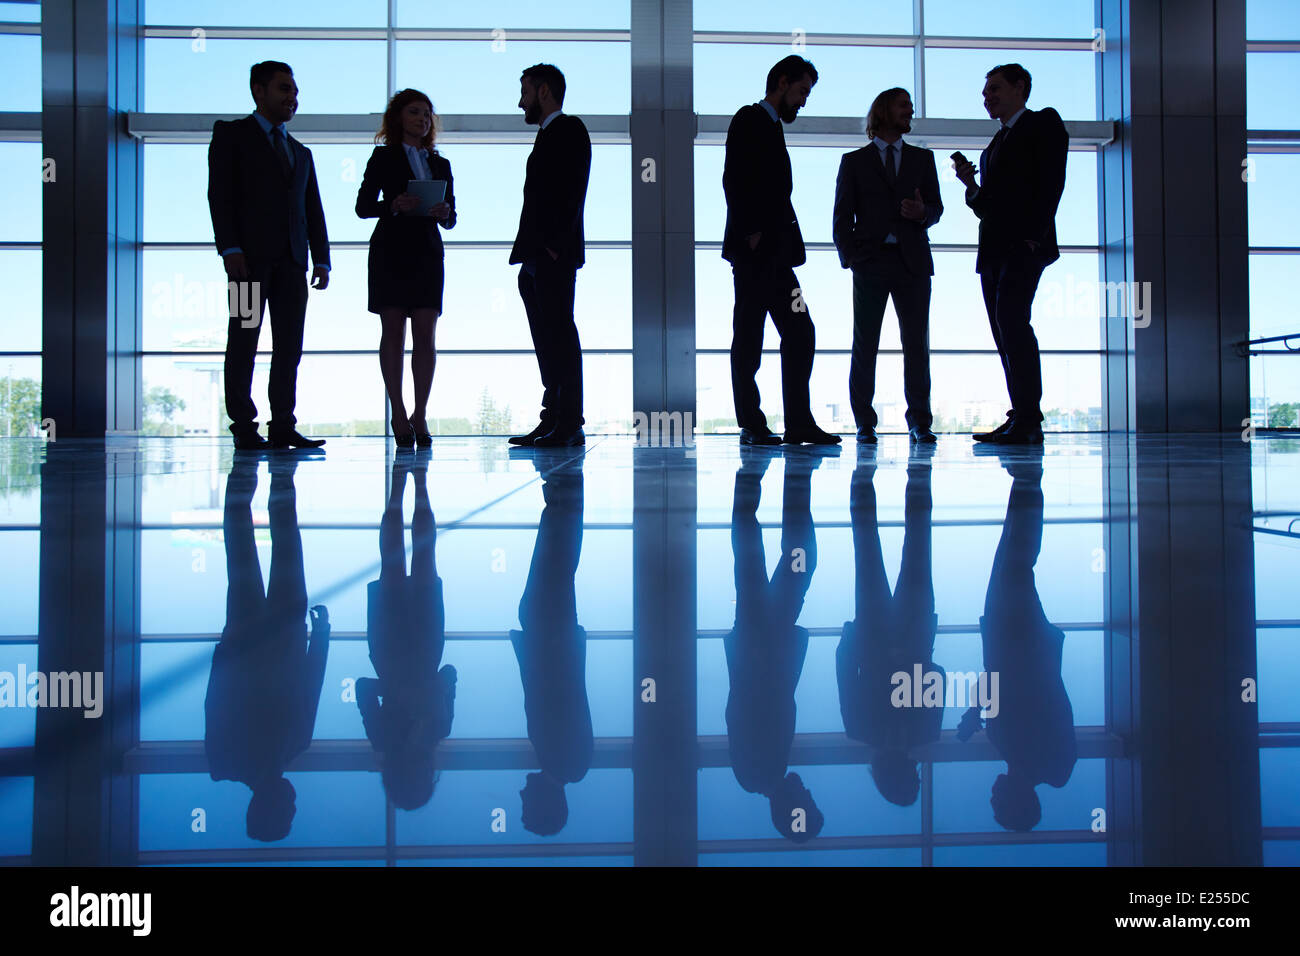 Silhouettes of several office workers standing by the window and working - Stock Image